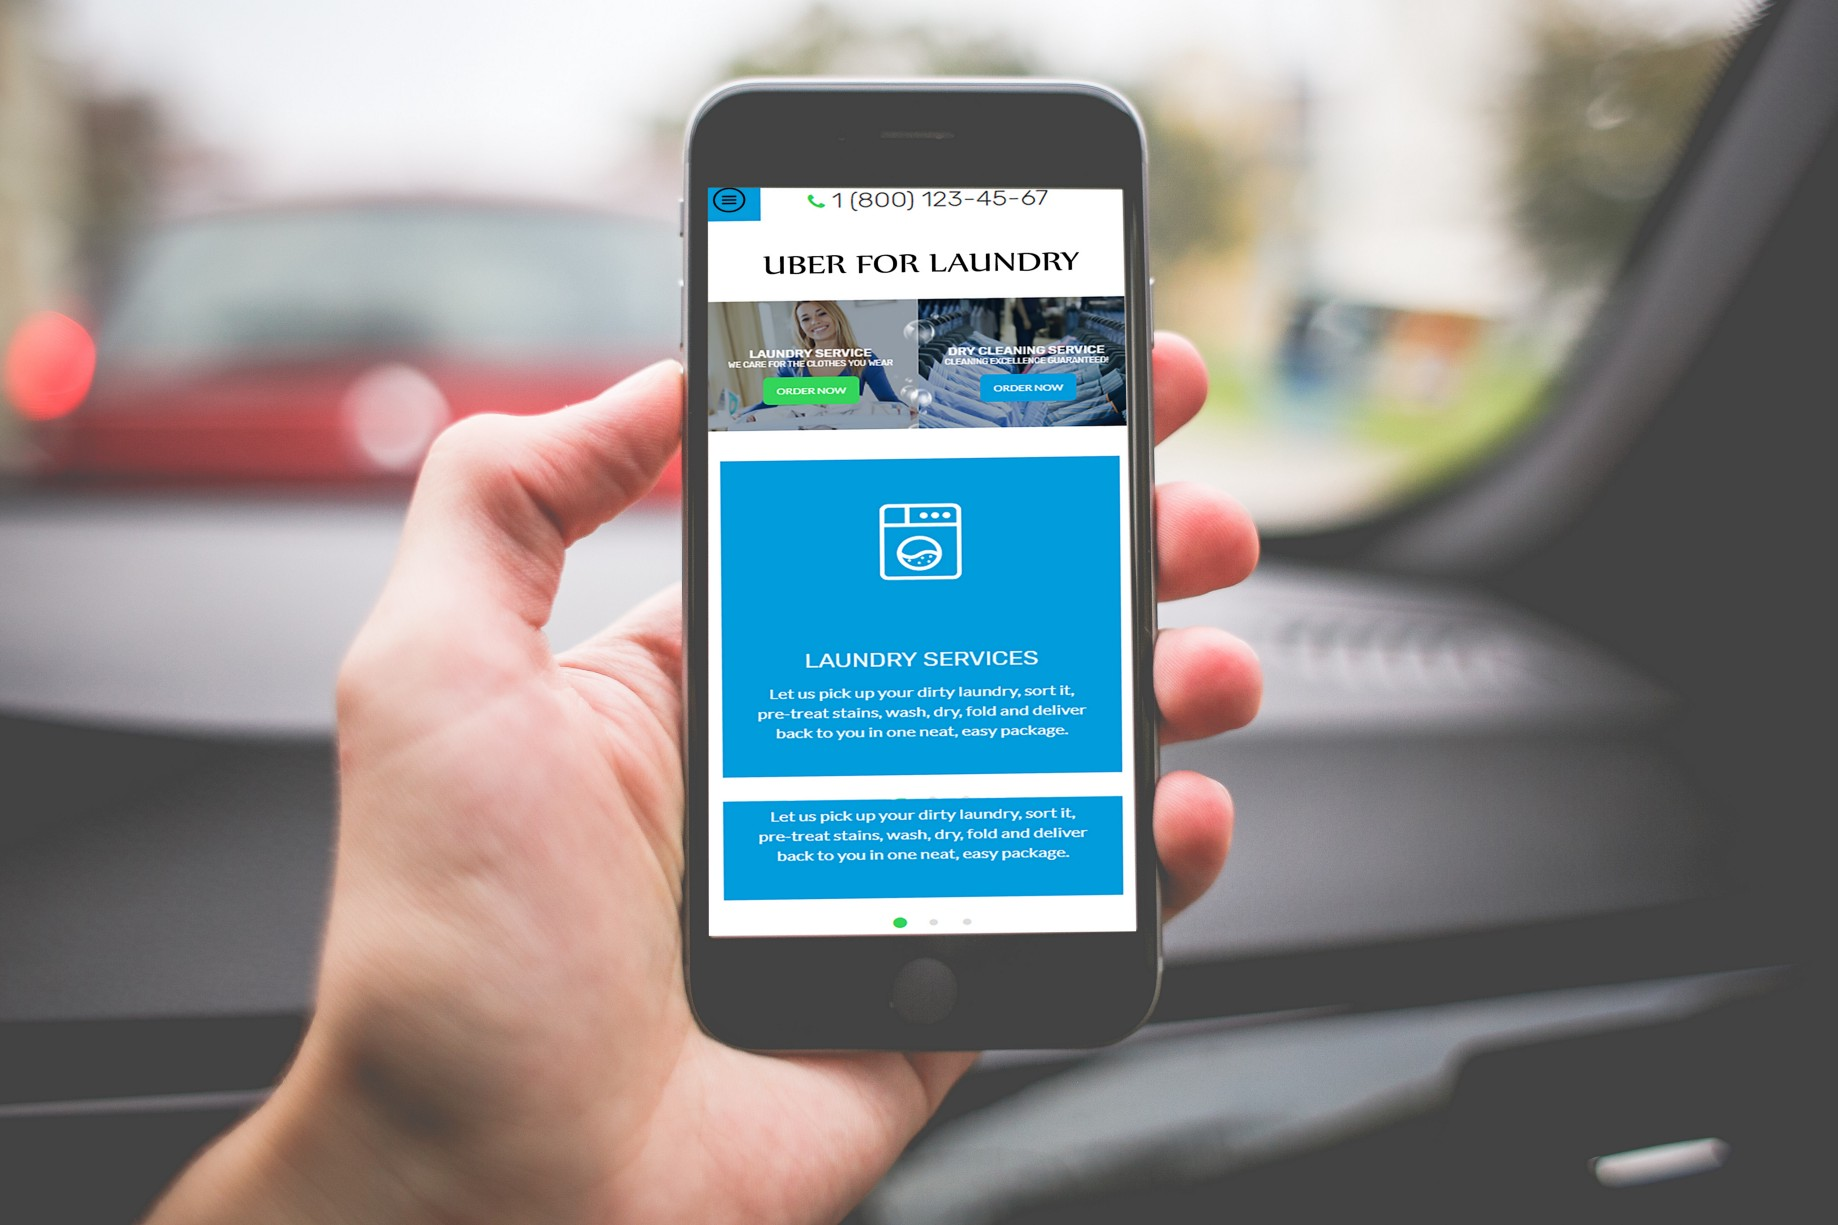 Get the Uber for Laundry script and add value to your business